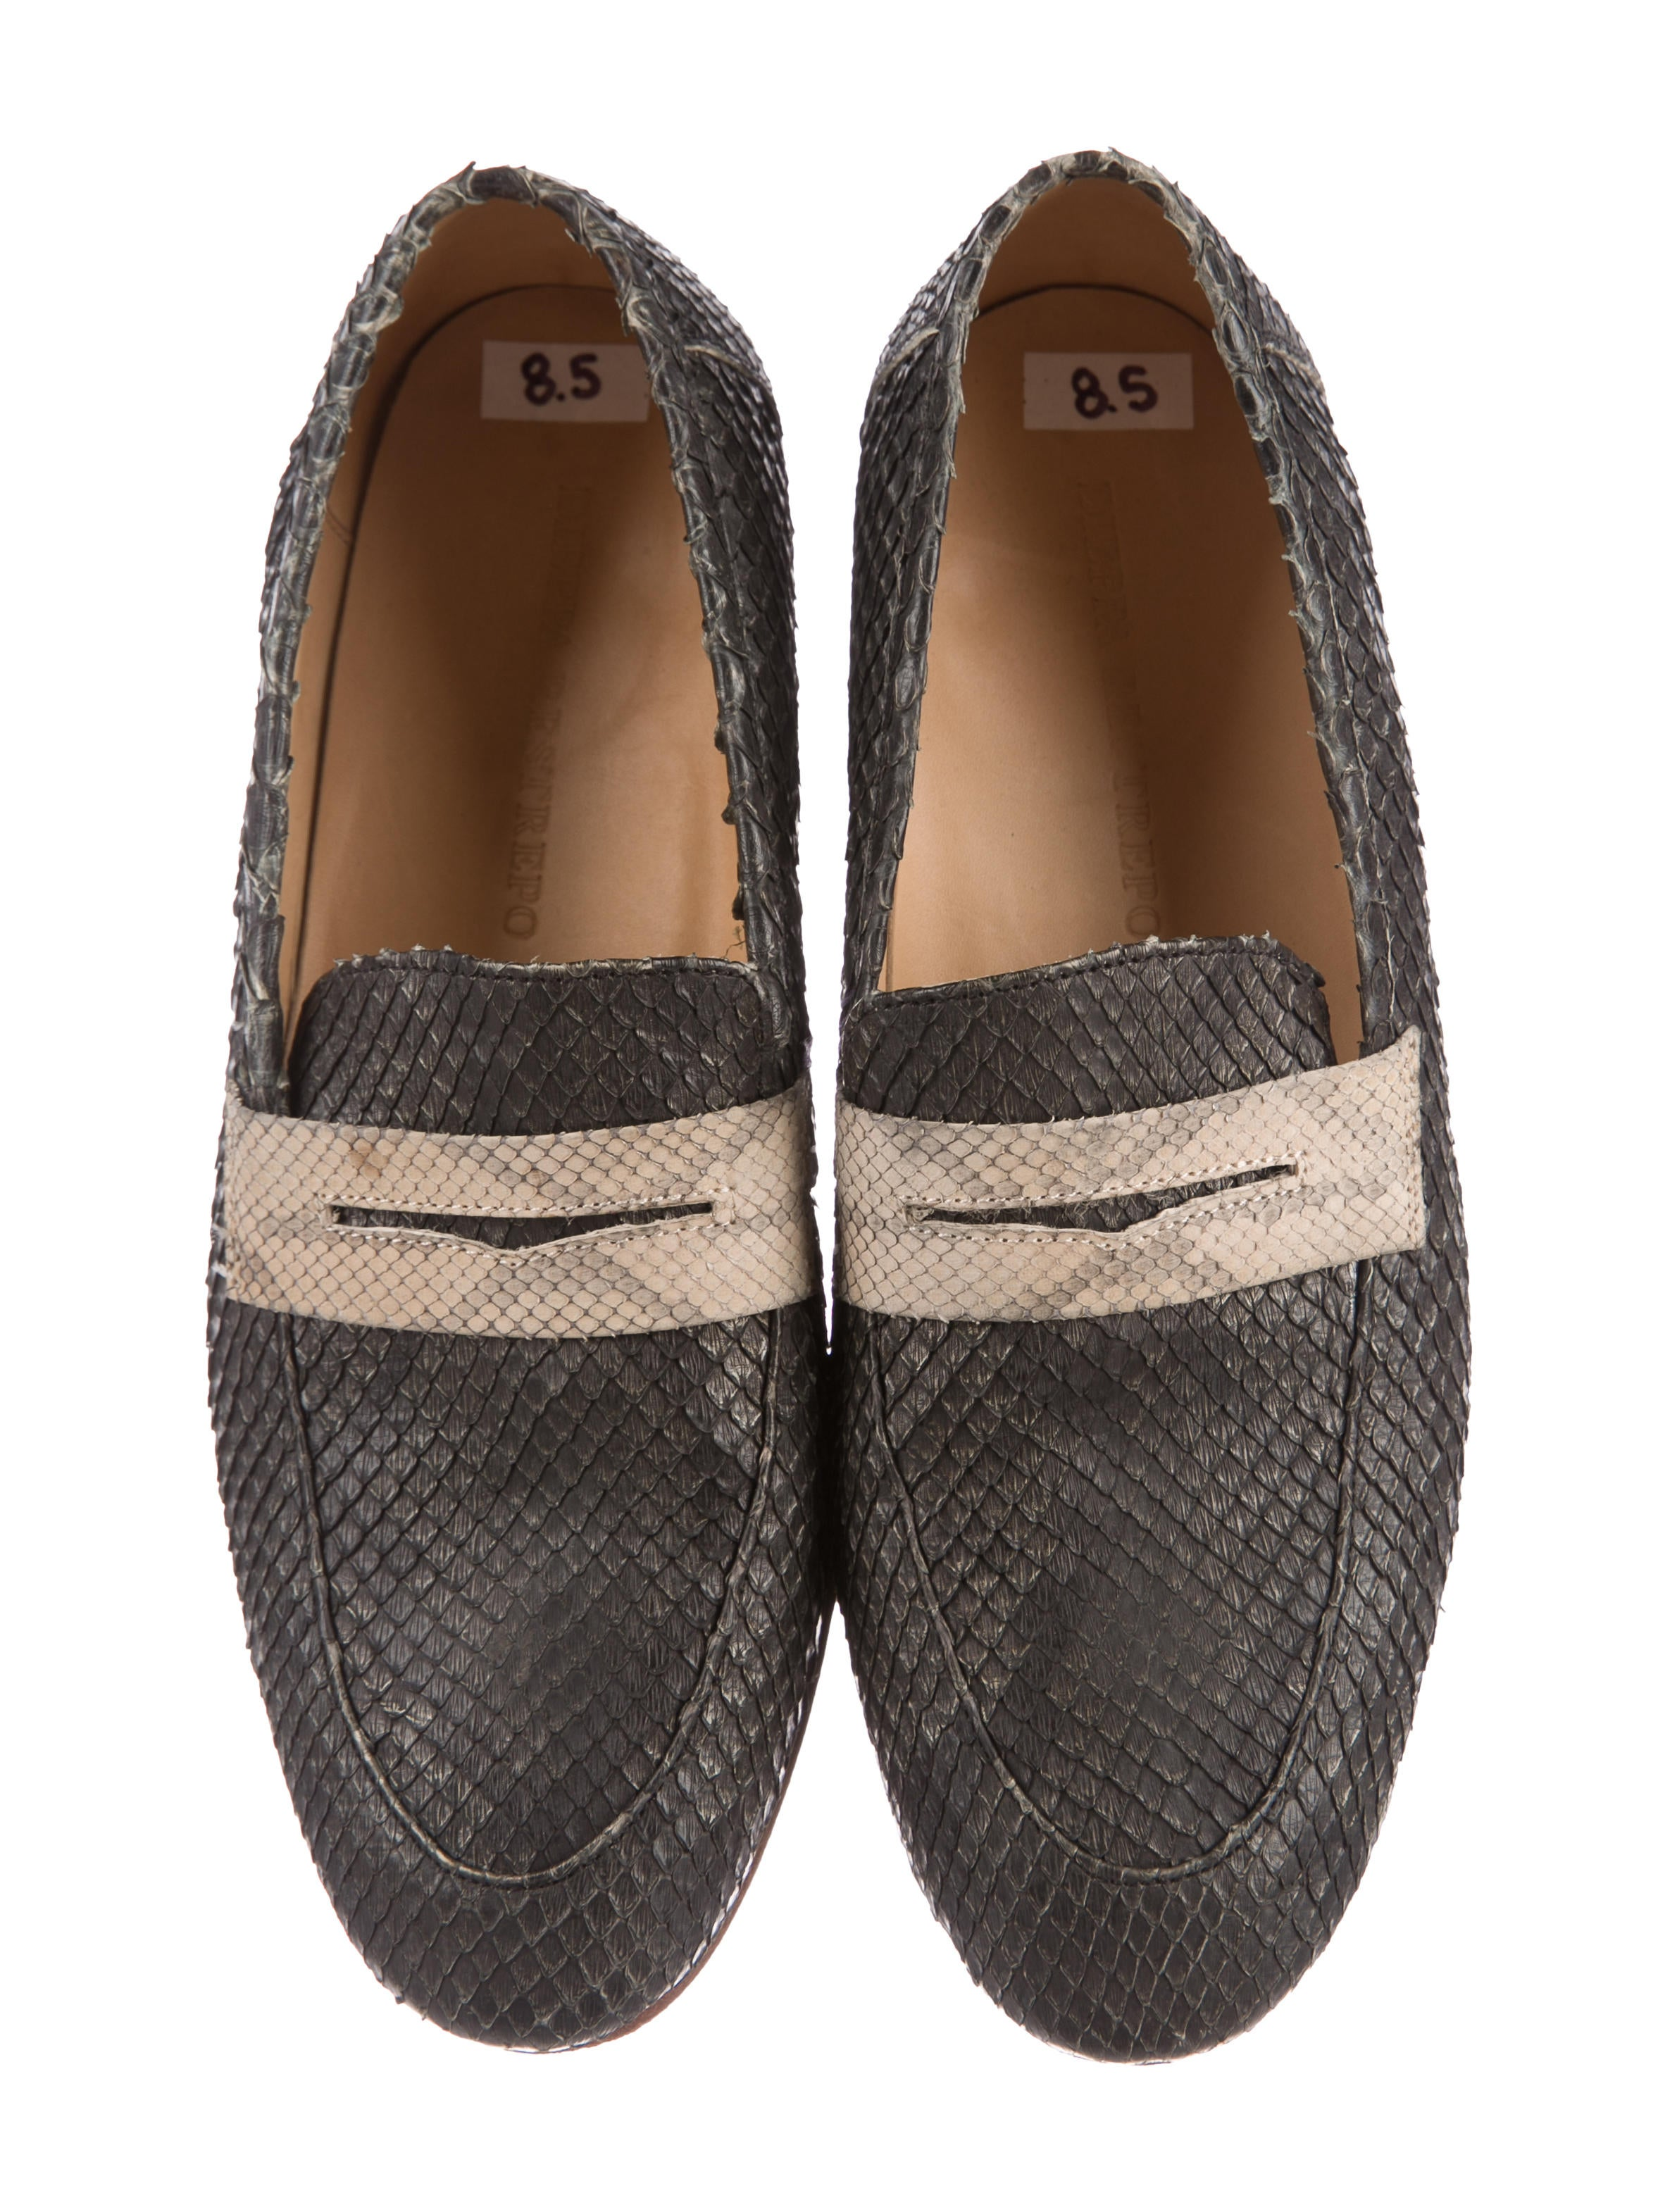 buy cheap visit new cheap sale low cost Dieppa Restrepo Snakeskin Round-Toe Loafers free shipping footlocker perfect cheap online cheap sale newest 0KlJL4RXe4